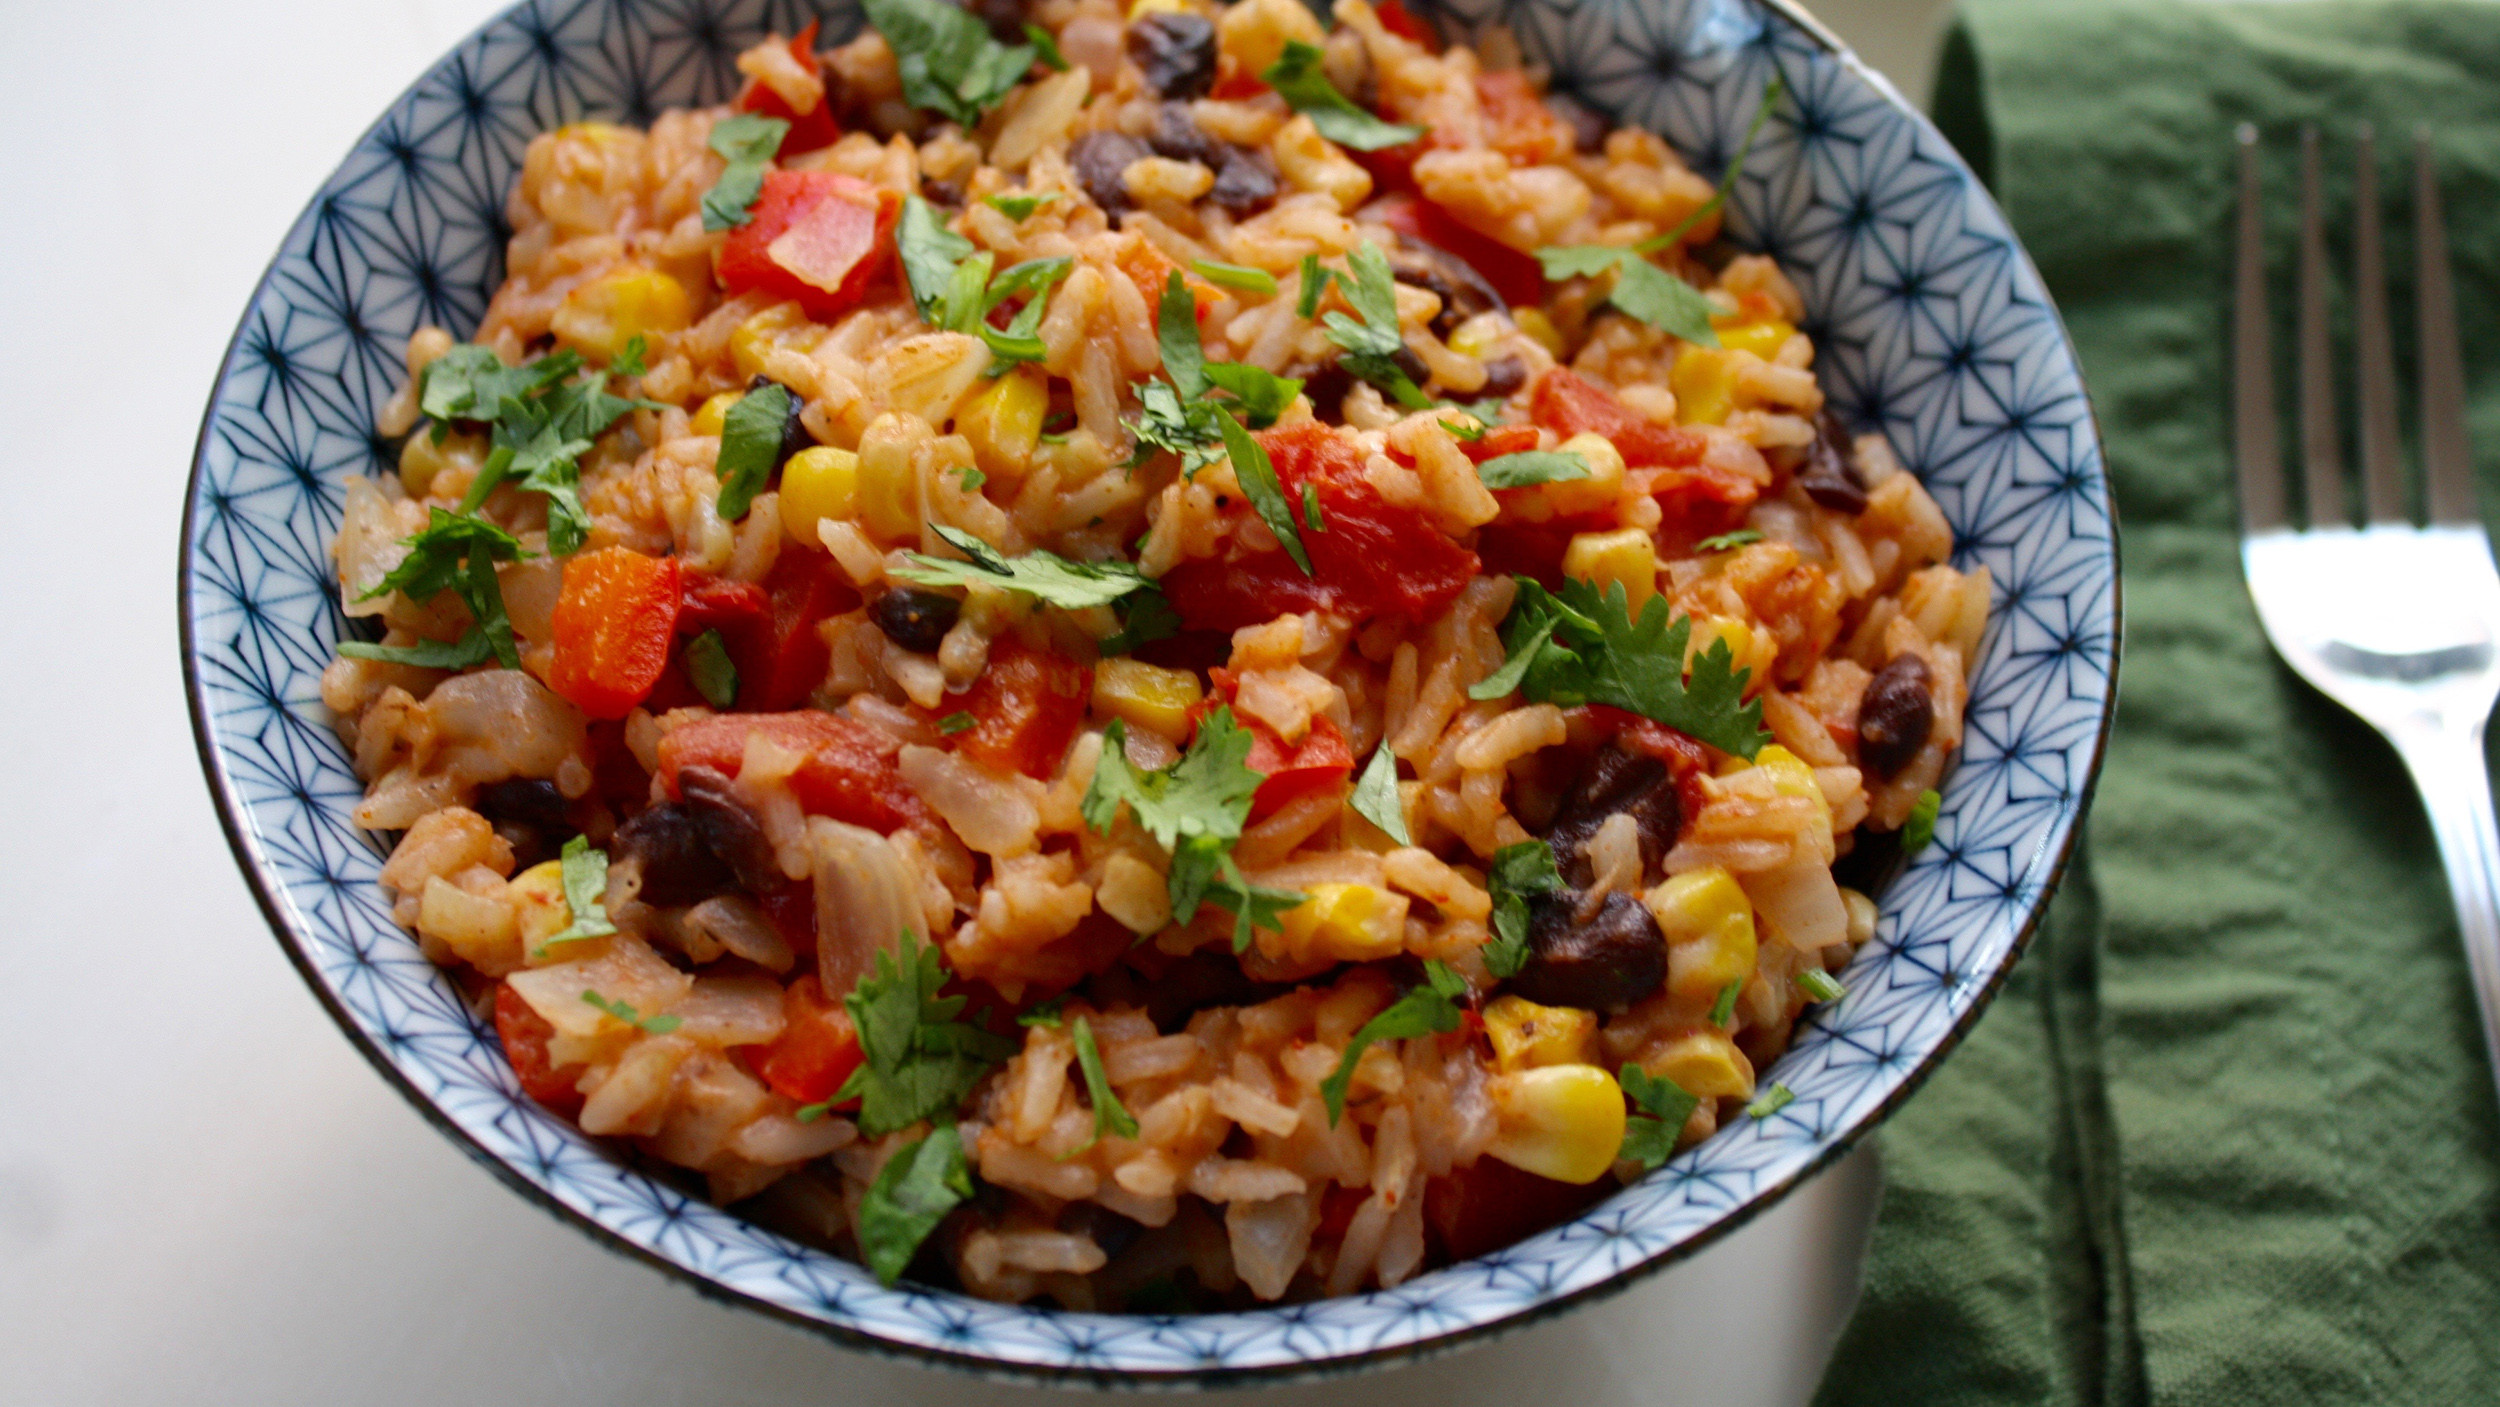 Veg Mexican Rice  ve arian spanish rice and beans